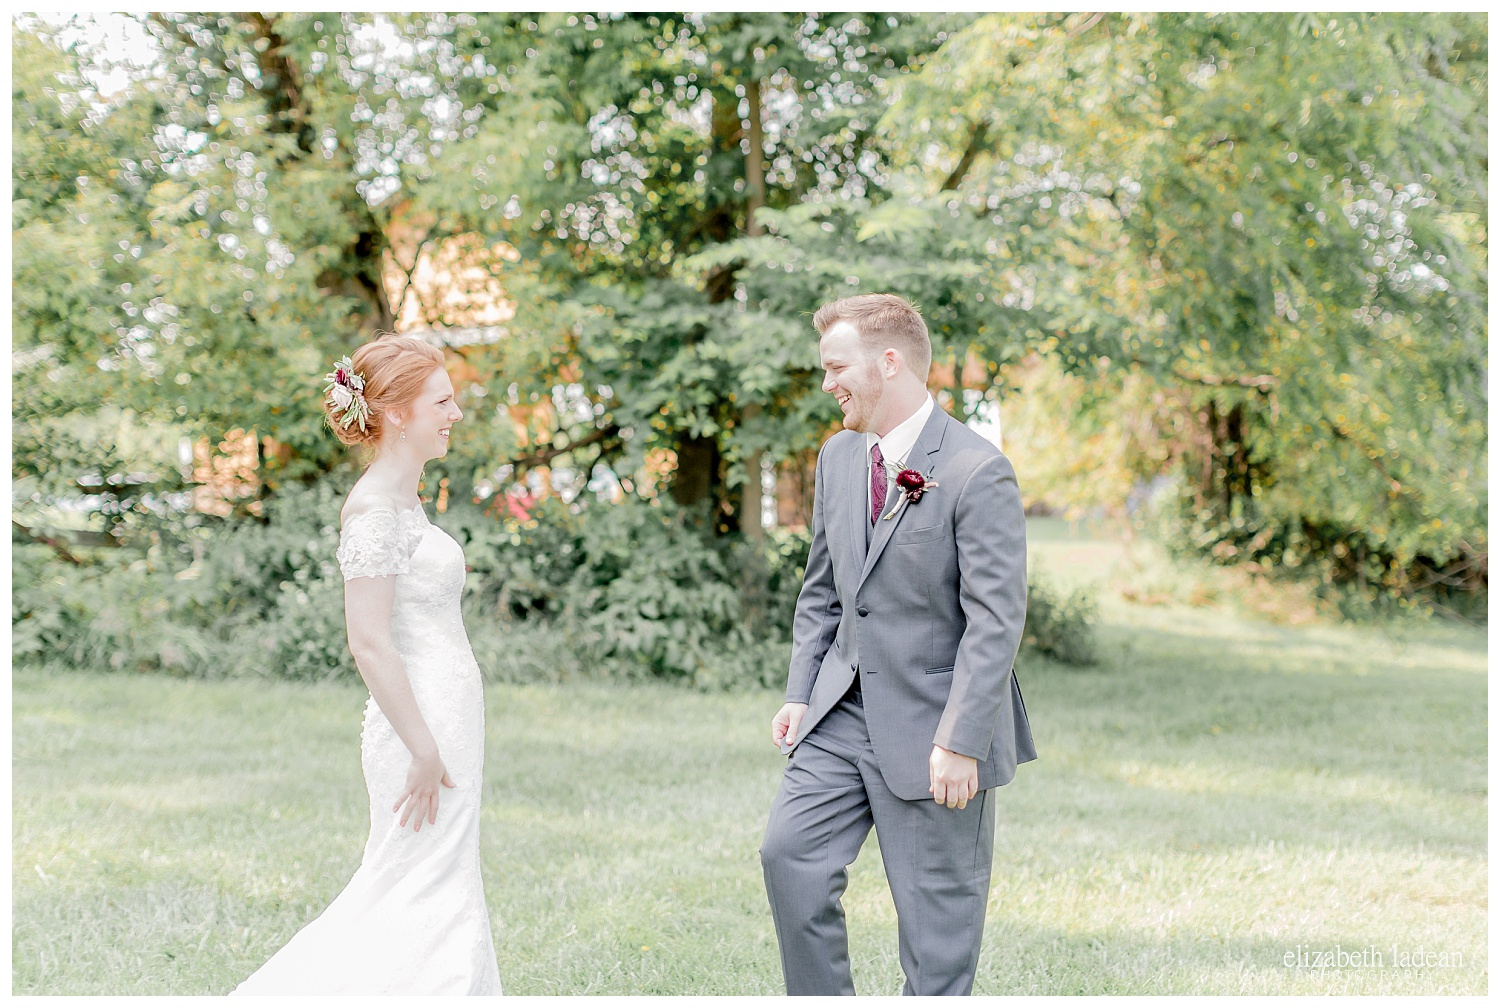 Burgundy-and-Gold-Wedding-Kansas-City-The-Legacy-at-Green-Hills-M+T0902-Elizabeth-Ladean-Photography-photo-_2259.jpg